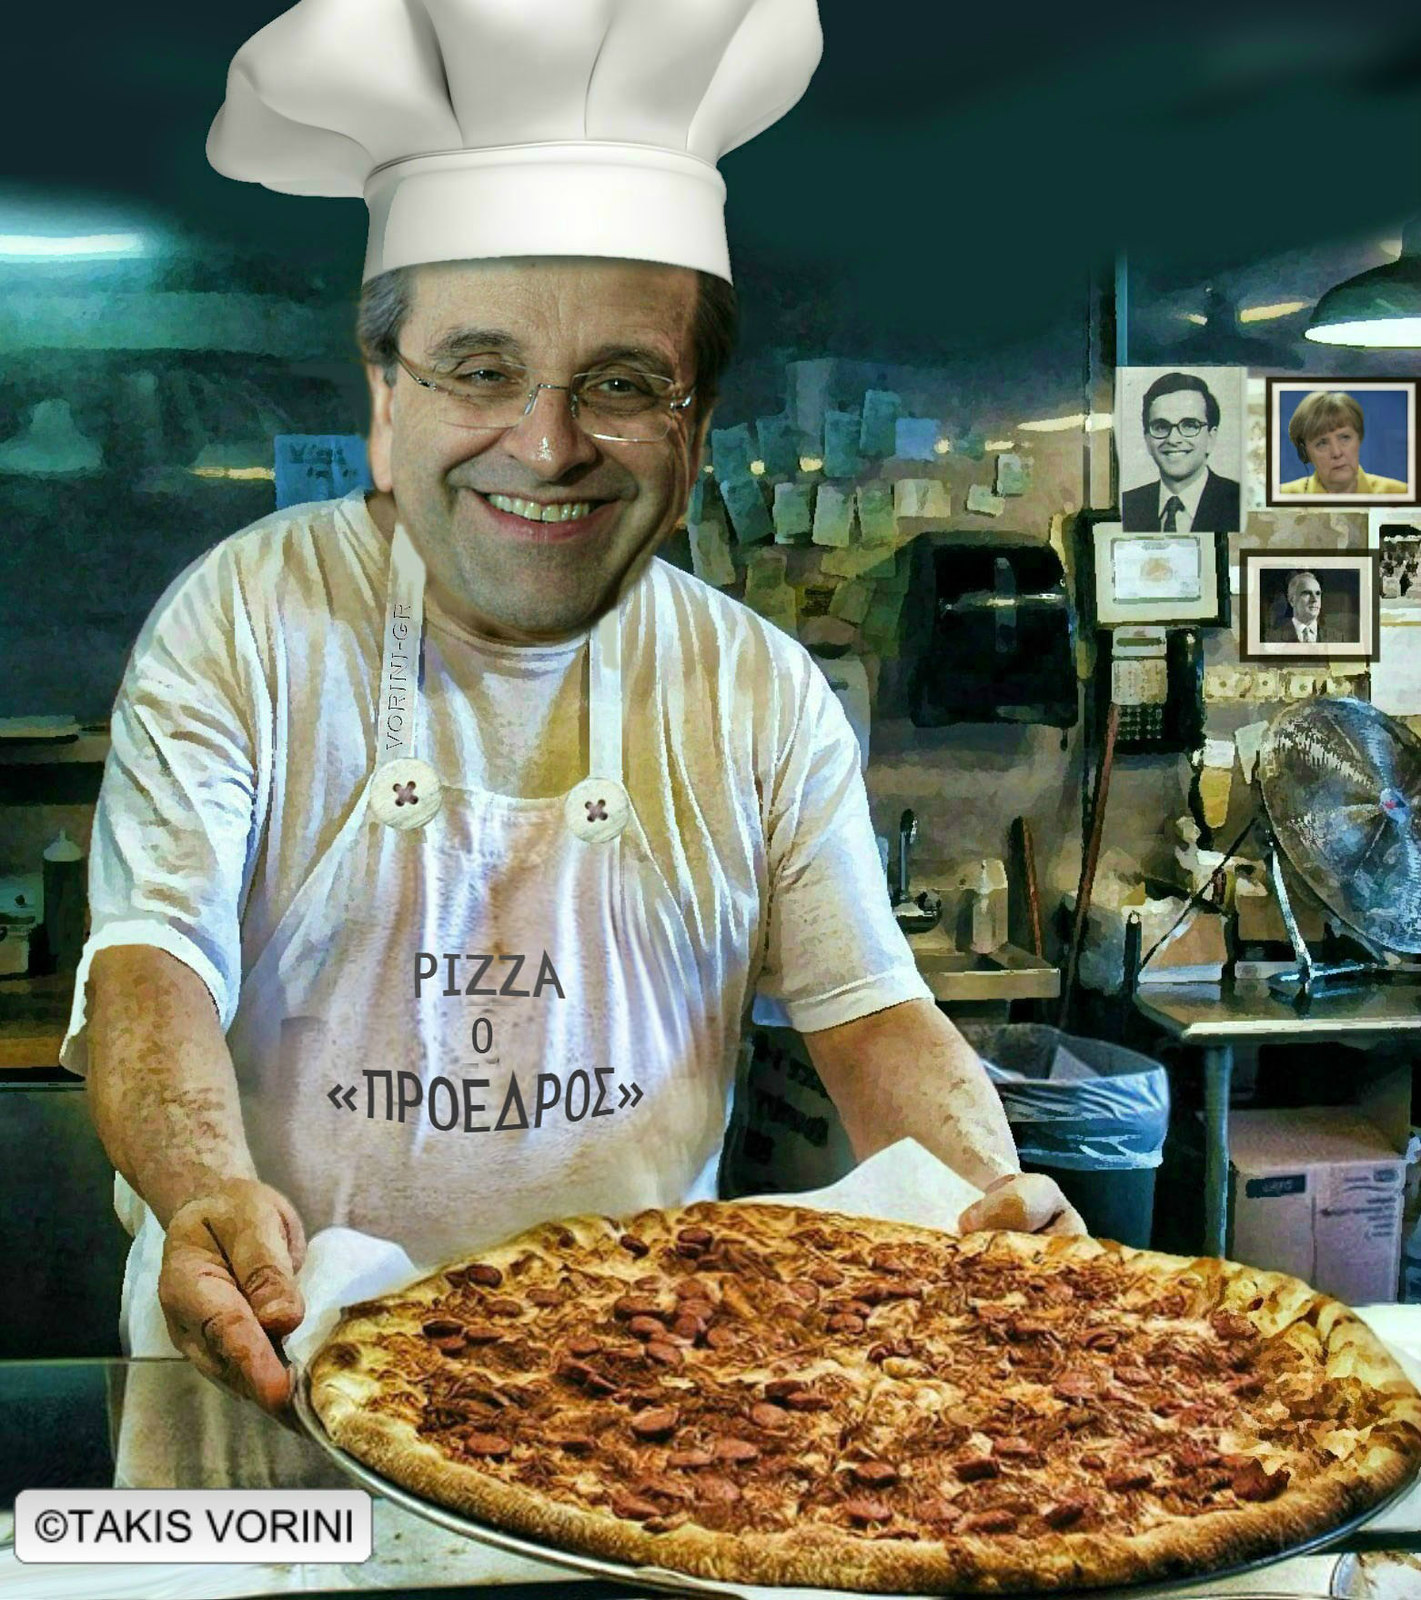 Samaras-pizza-boy -2-2393